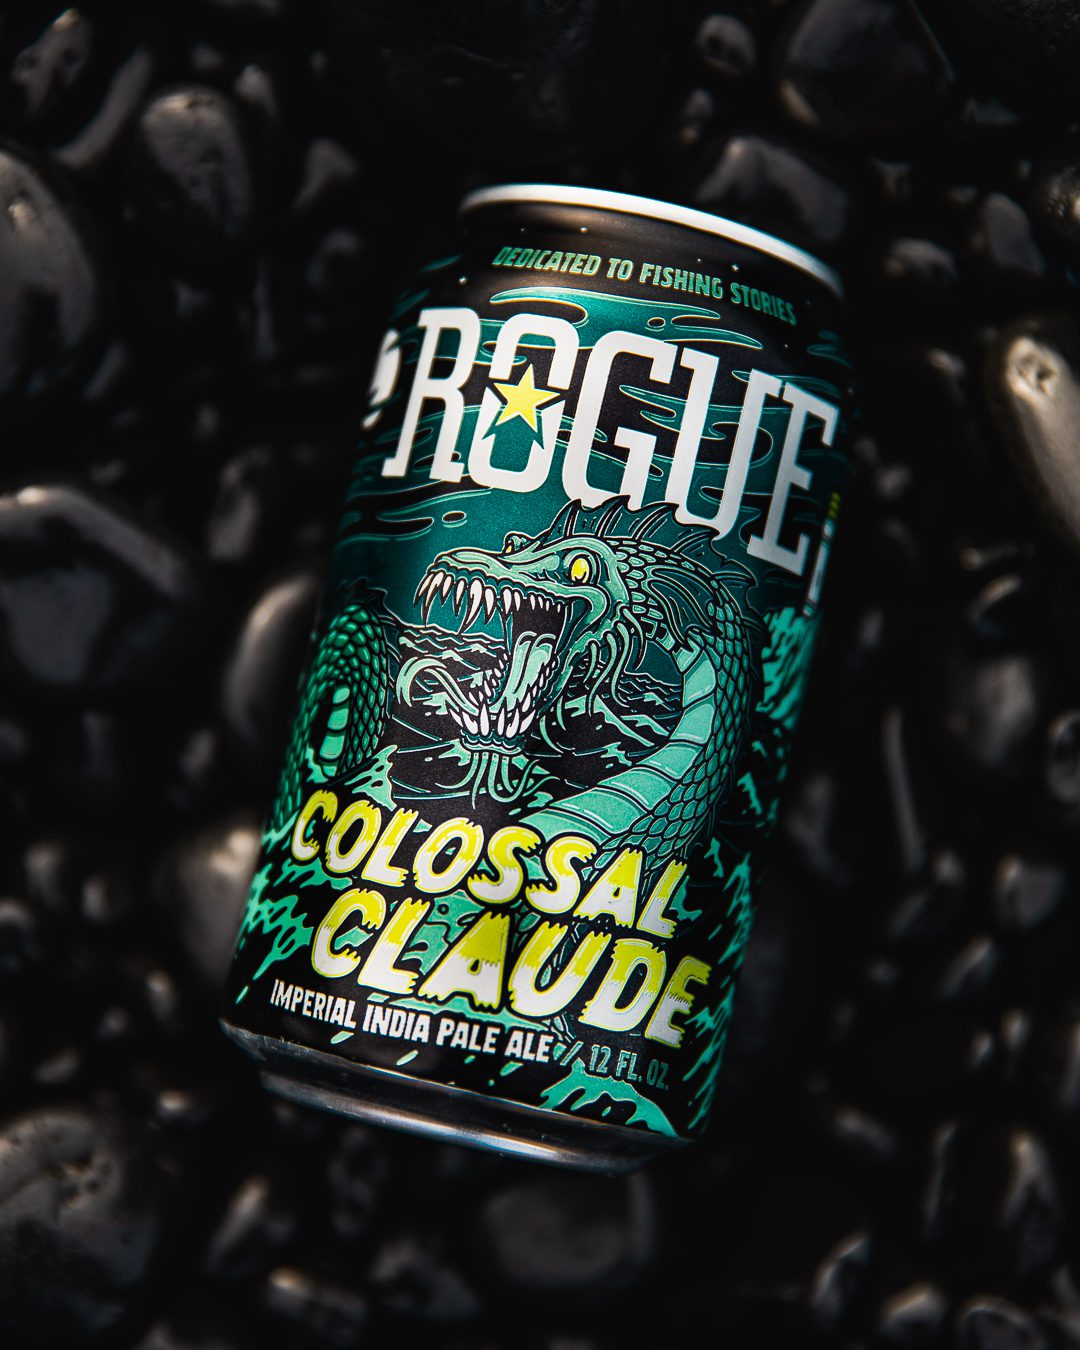 Introducing Rogue Colossal Claude Imperial IPA